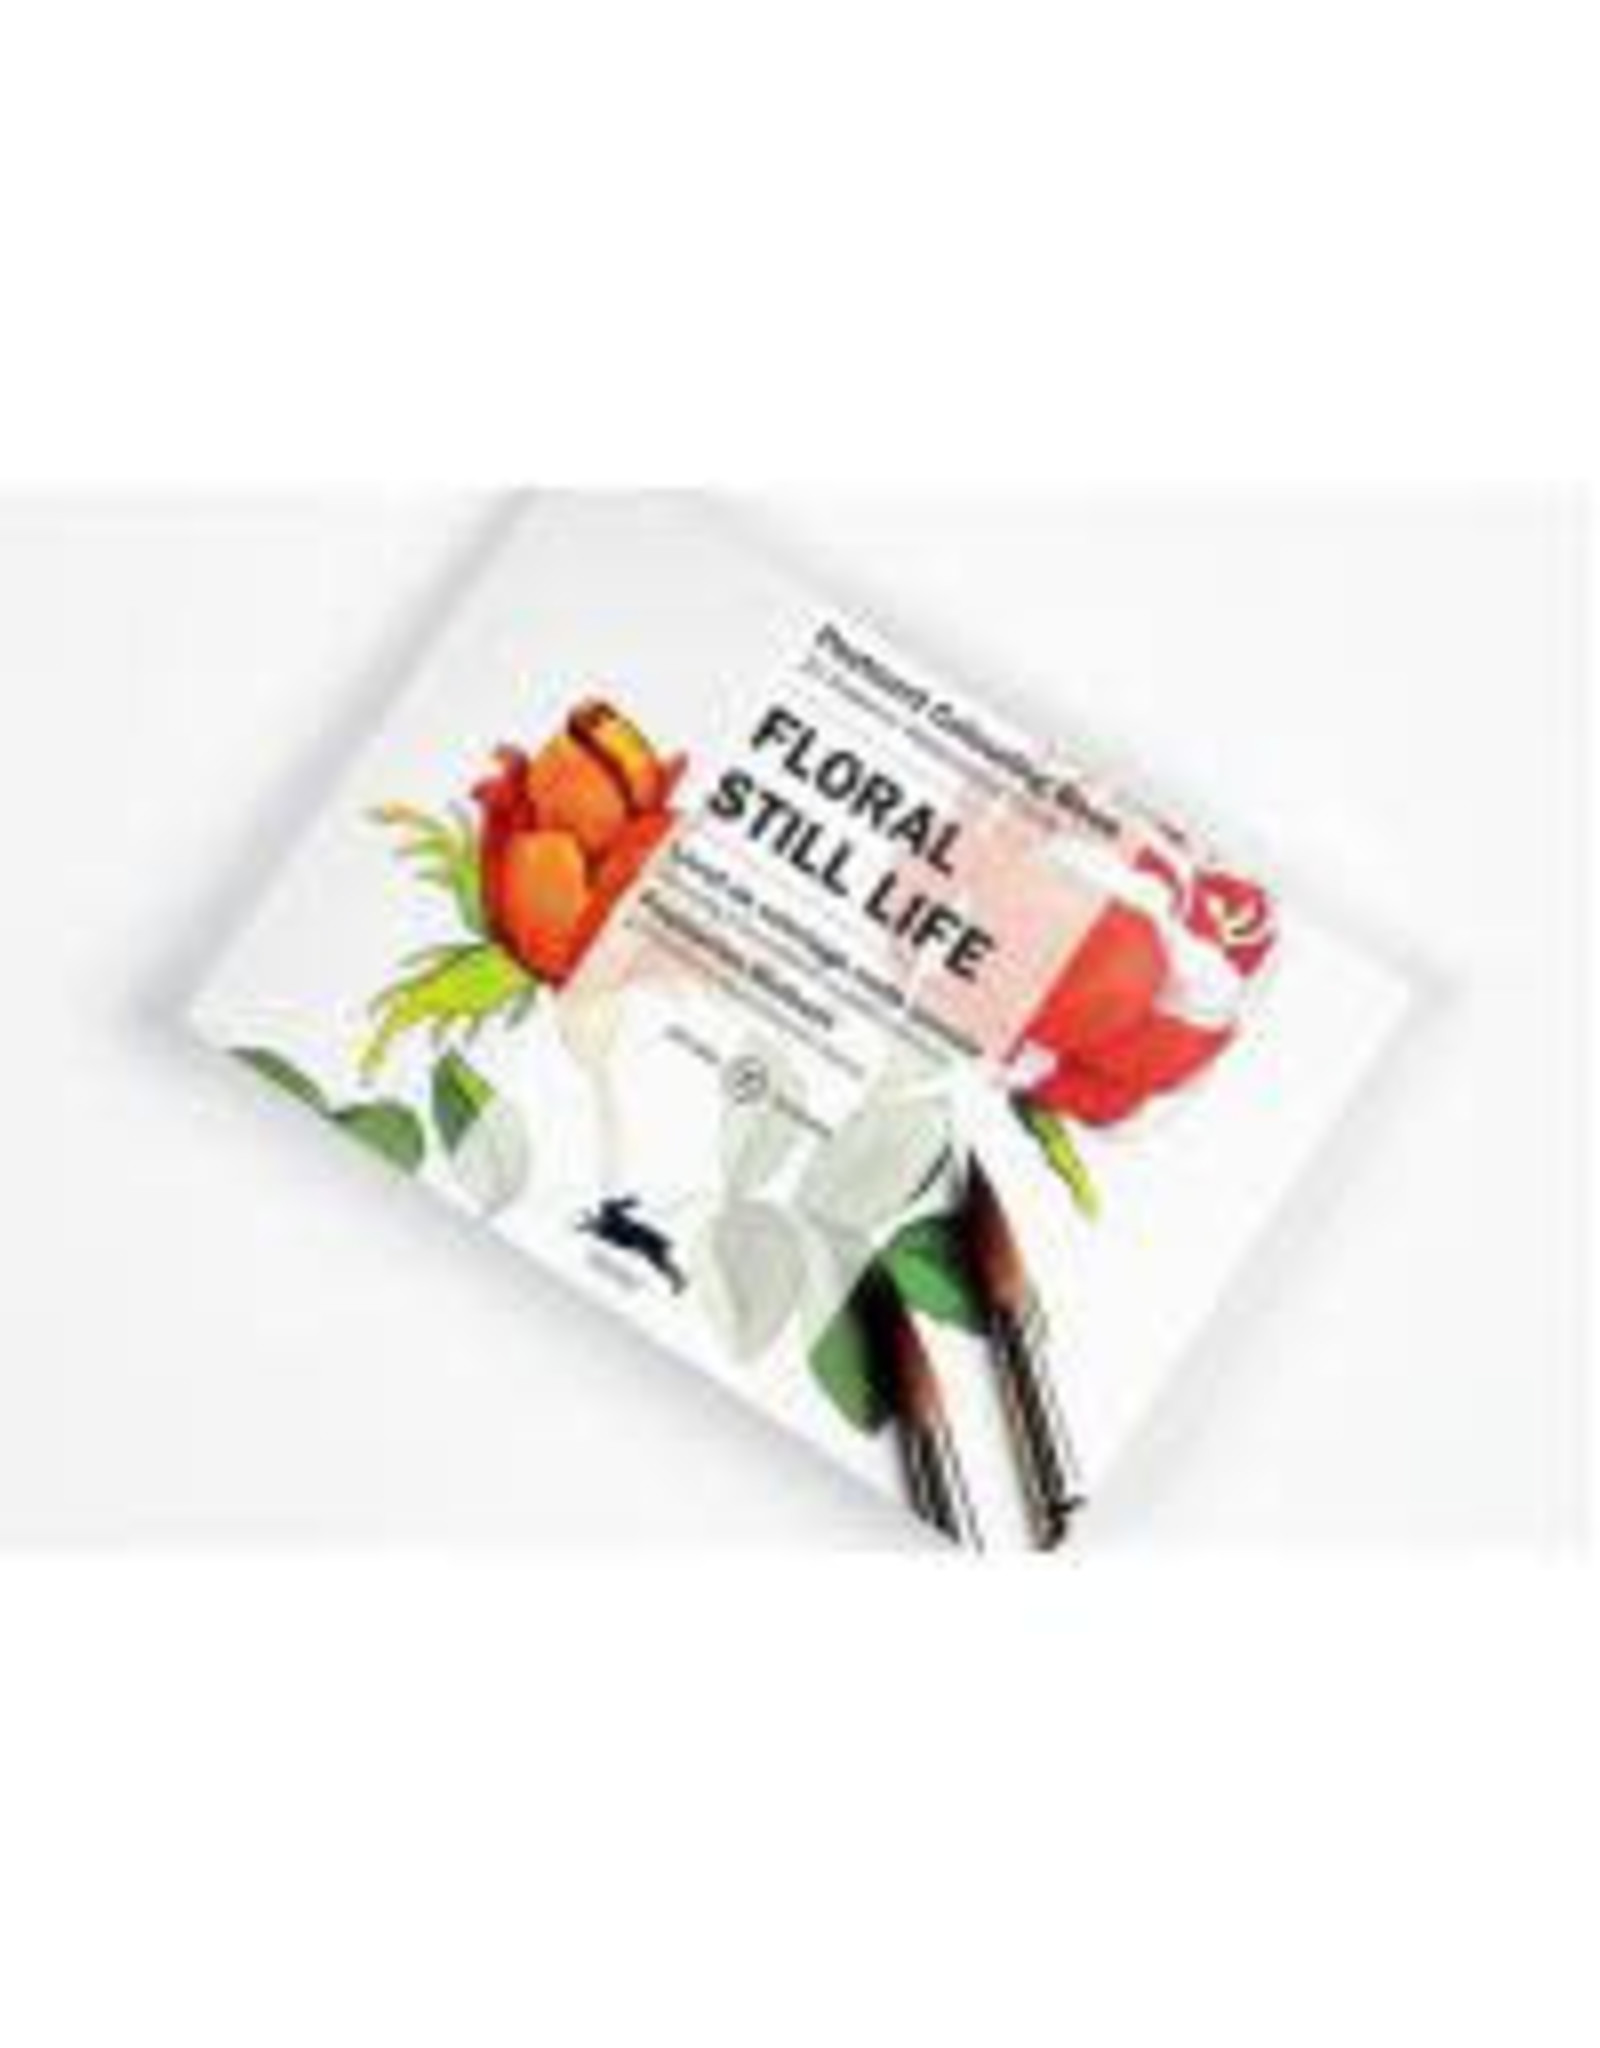 Postcard colouring book - Floral still life